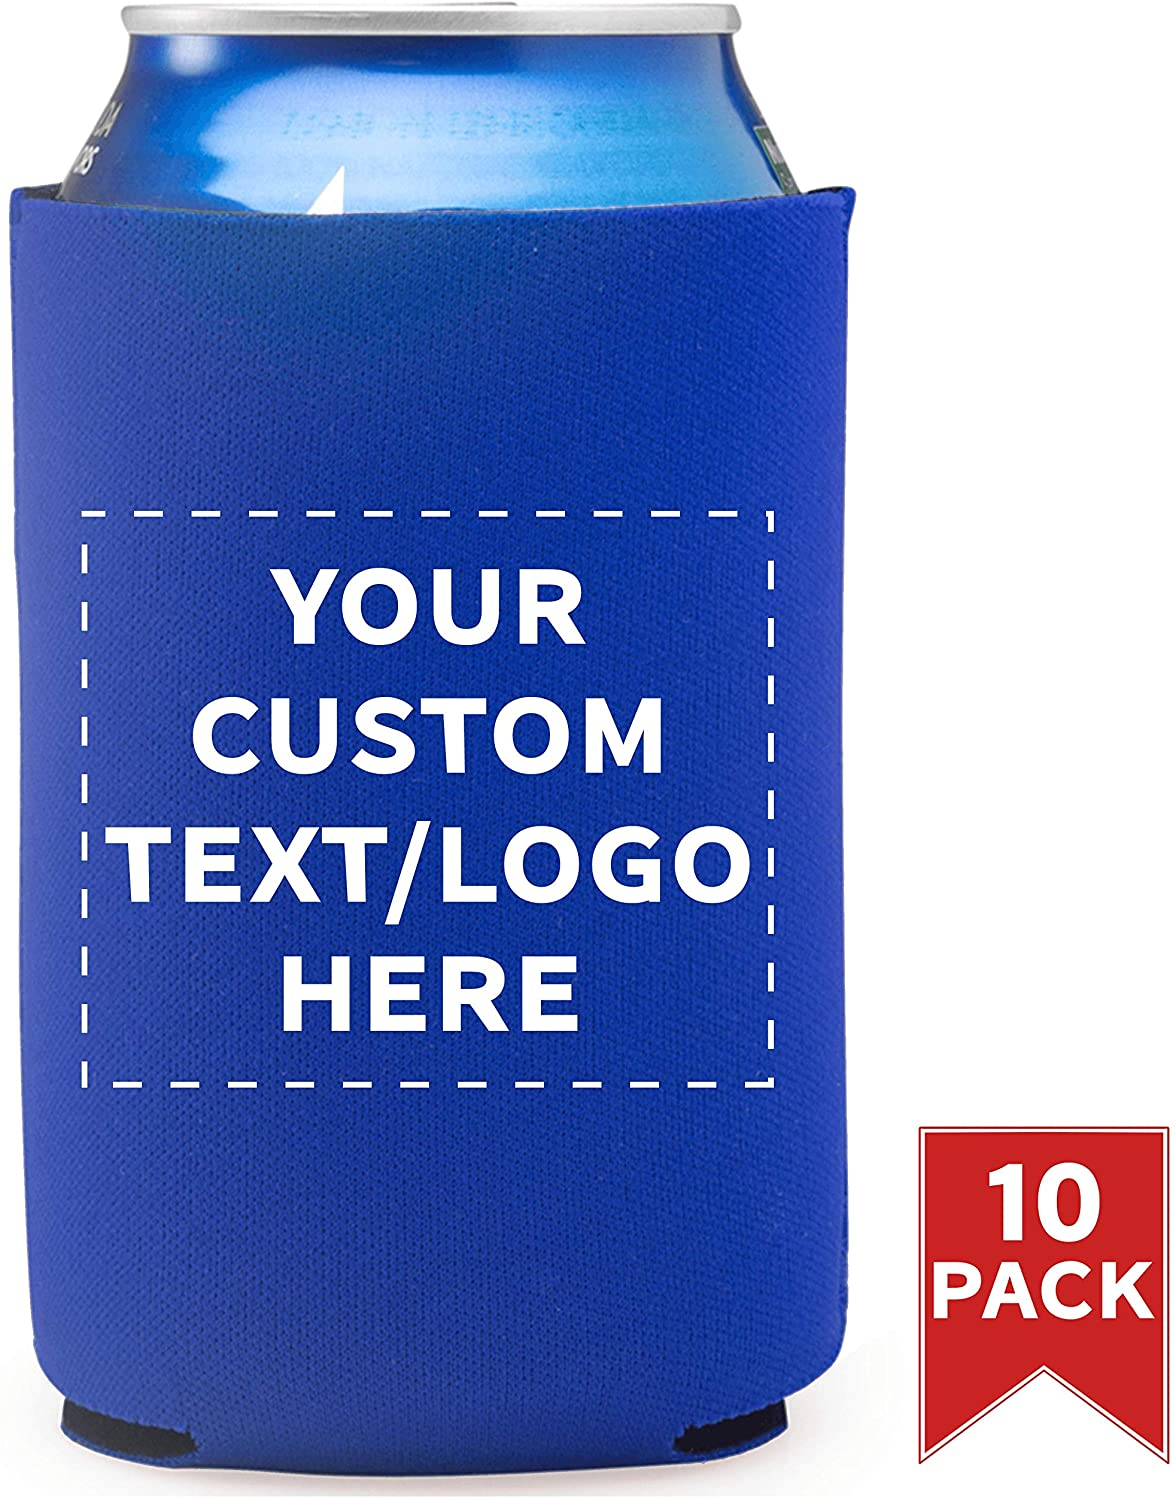 Neoprene Collapsible Can Coolers - Holds 12. oz Cans - 10 pack - Customizable Text, Logo - Great for Weddings, Bachelor Bachelorette Parties, Family Party, Anniversary, Friendsgiving, BBQ - Royal Blue